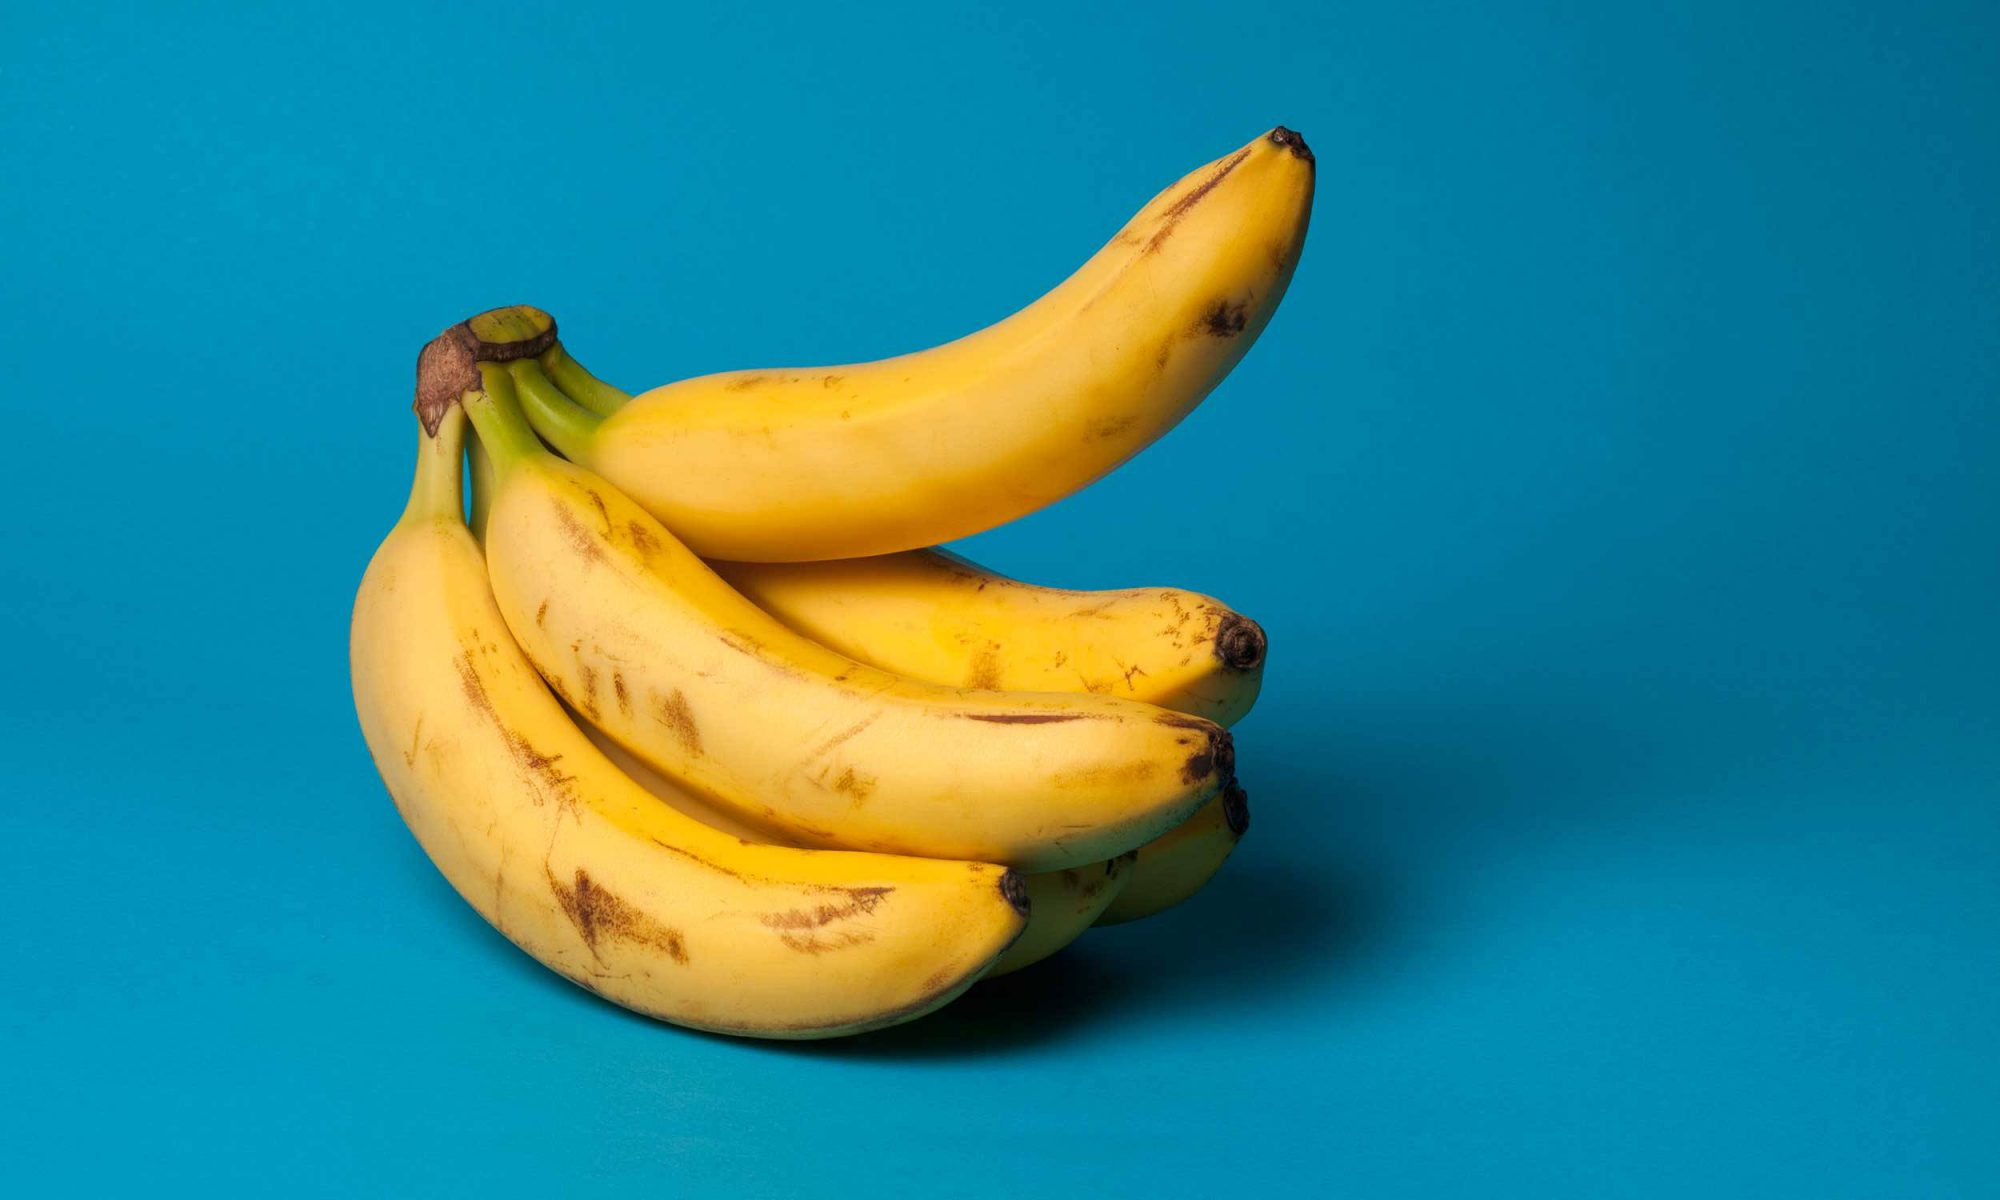 How to Store Bananas So They Don't Turn Black